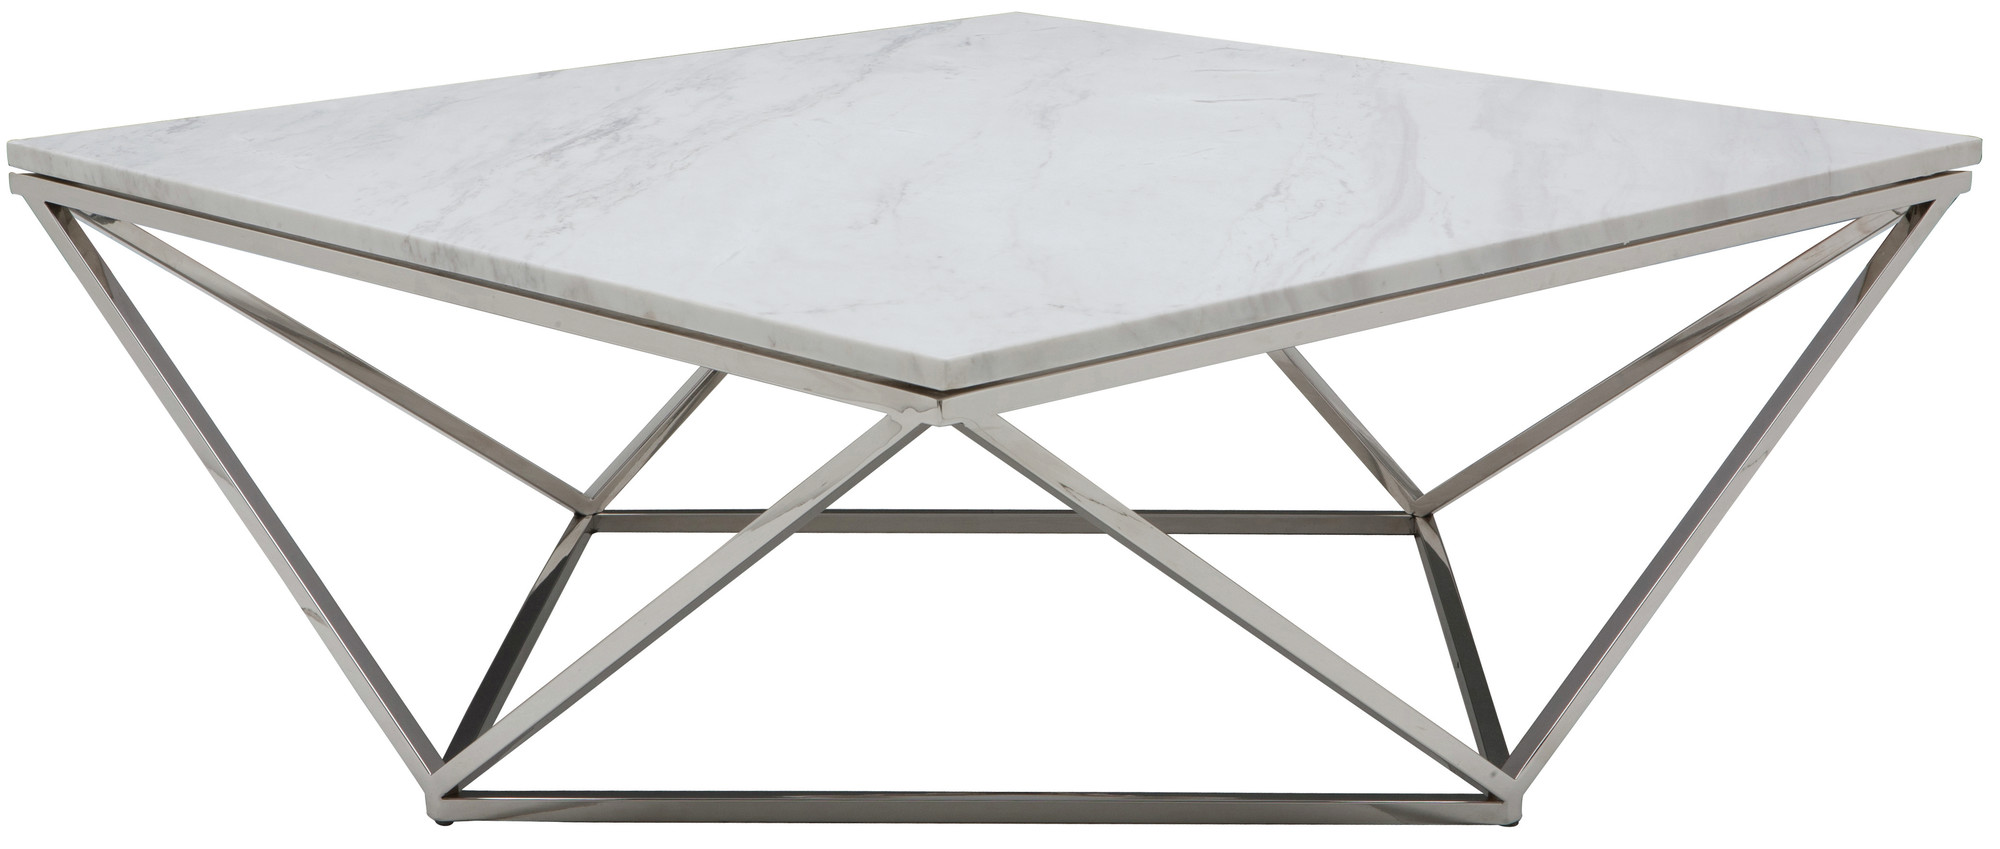 jasmine-coffee-table-nuevo.jpg